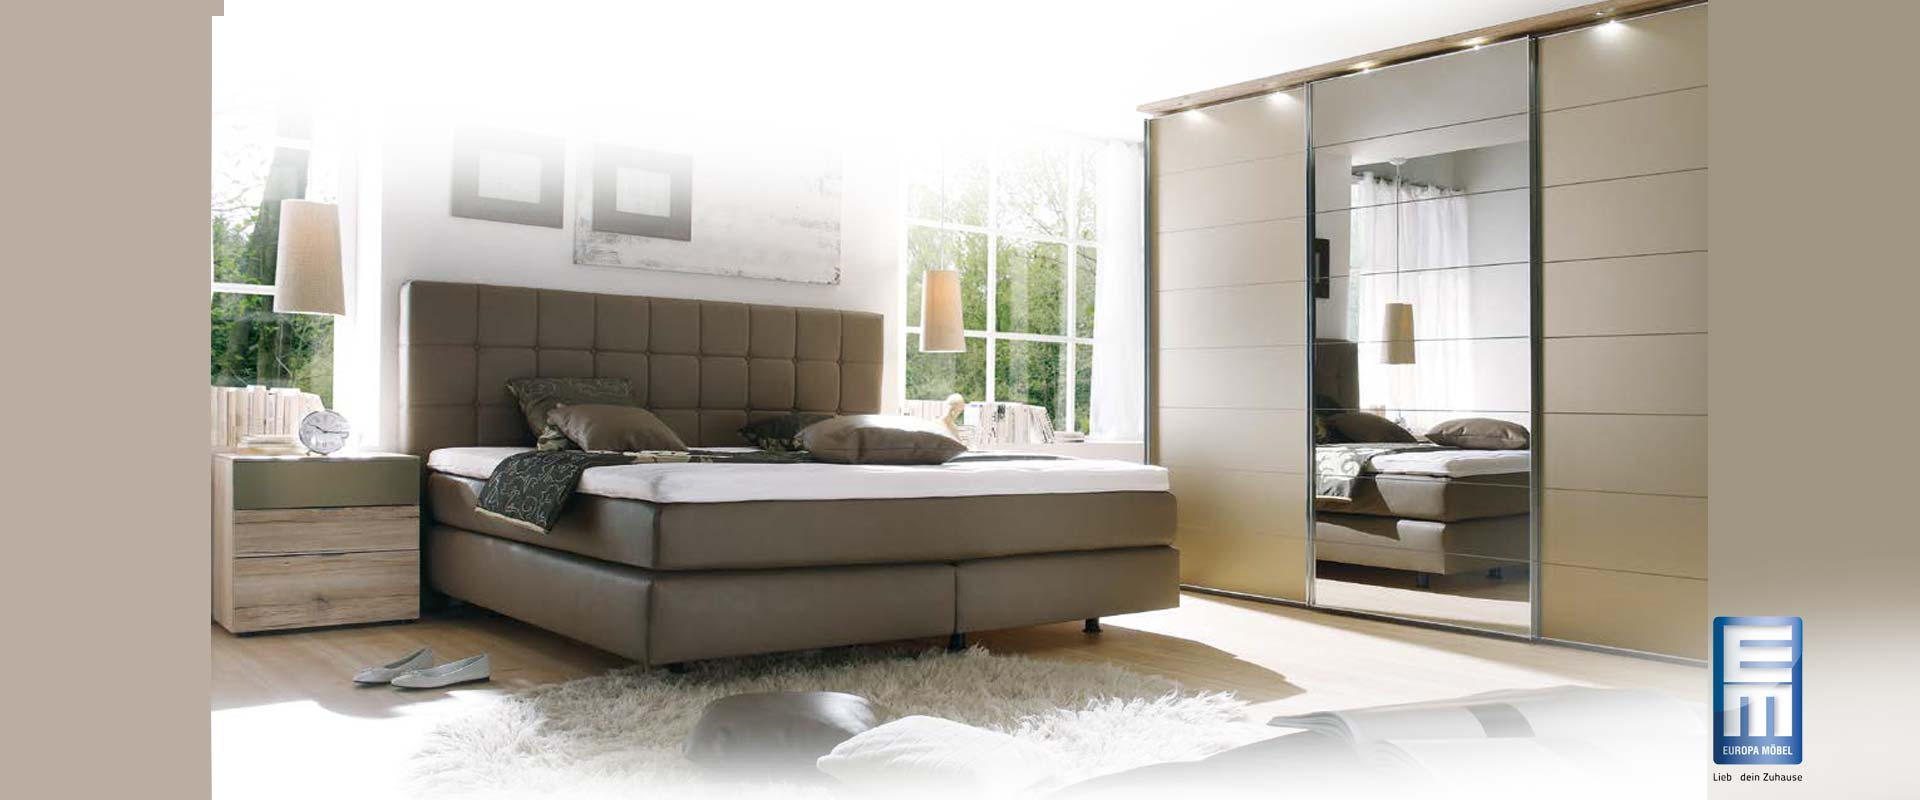 schlafzimmerm bel europa m bel in berlin domeyer m bel und k chen. Black Bedroom Furniture Sets. Home Design Ideas